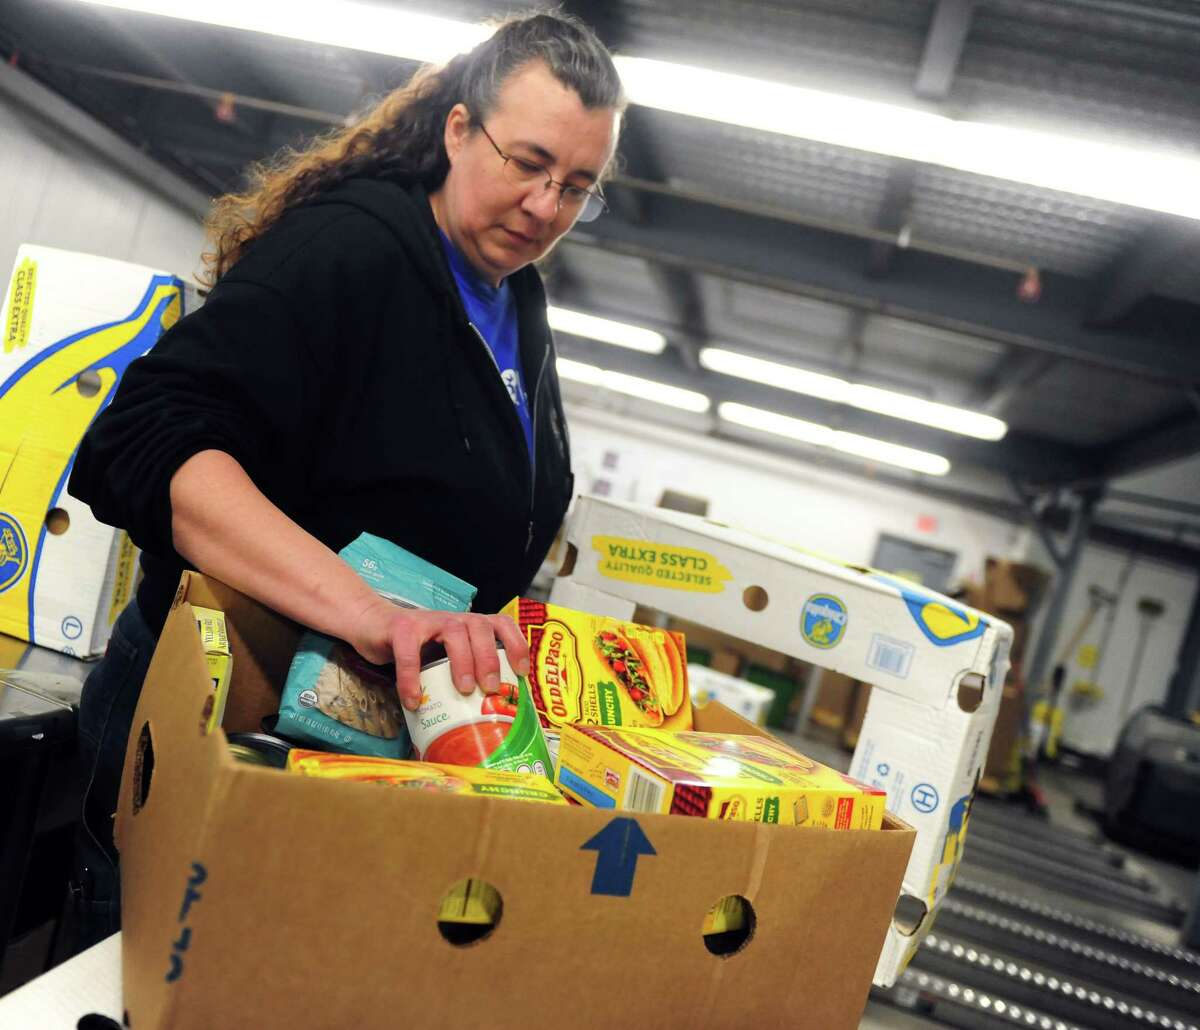 Tammie Racine sorts through boxes in the salvage sorting room of the Regional Food Bank in Albany, N.Y. on March 27, 2017. (Robert Downen/Times Union)